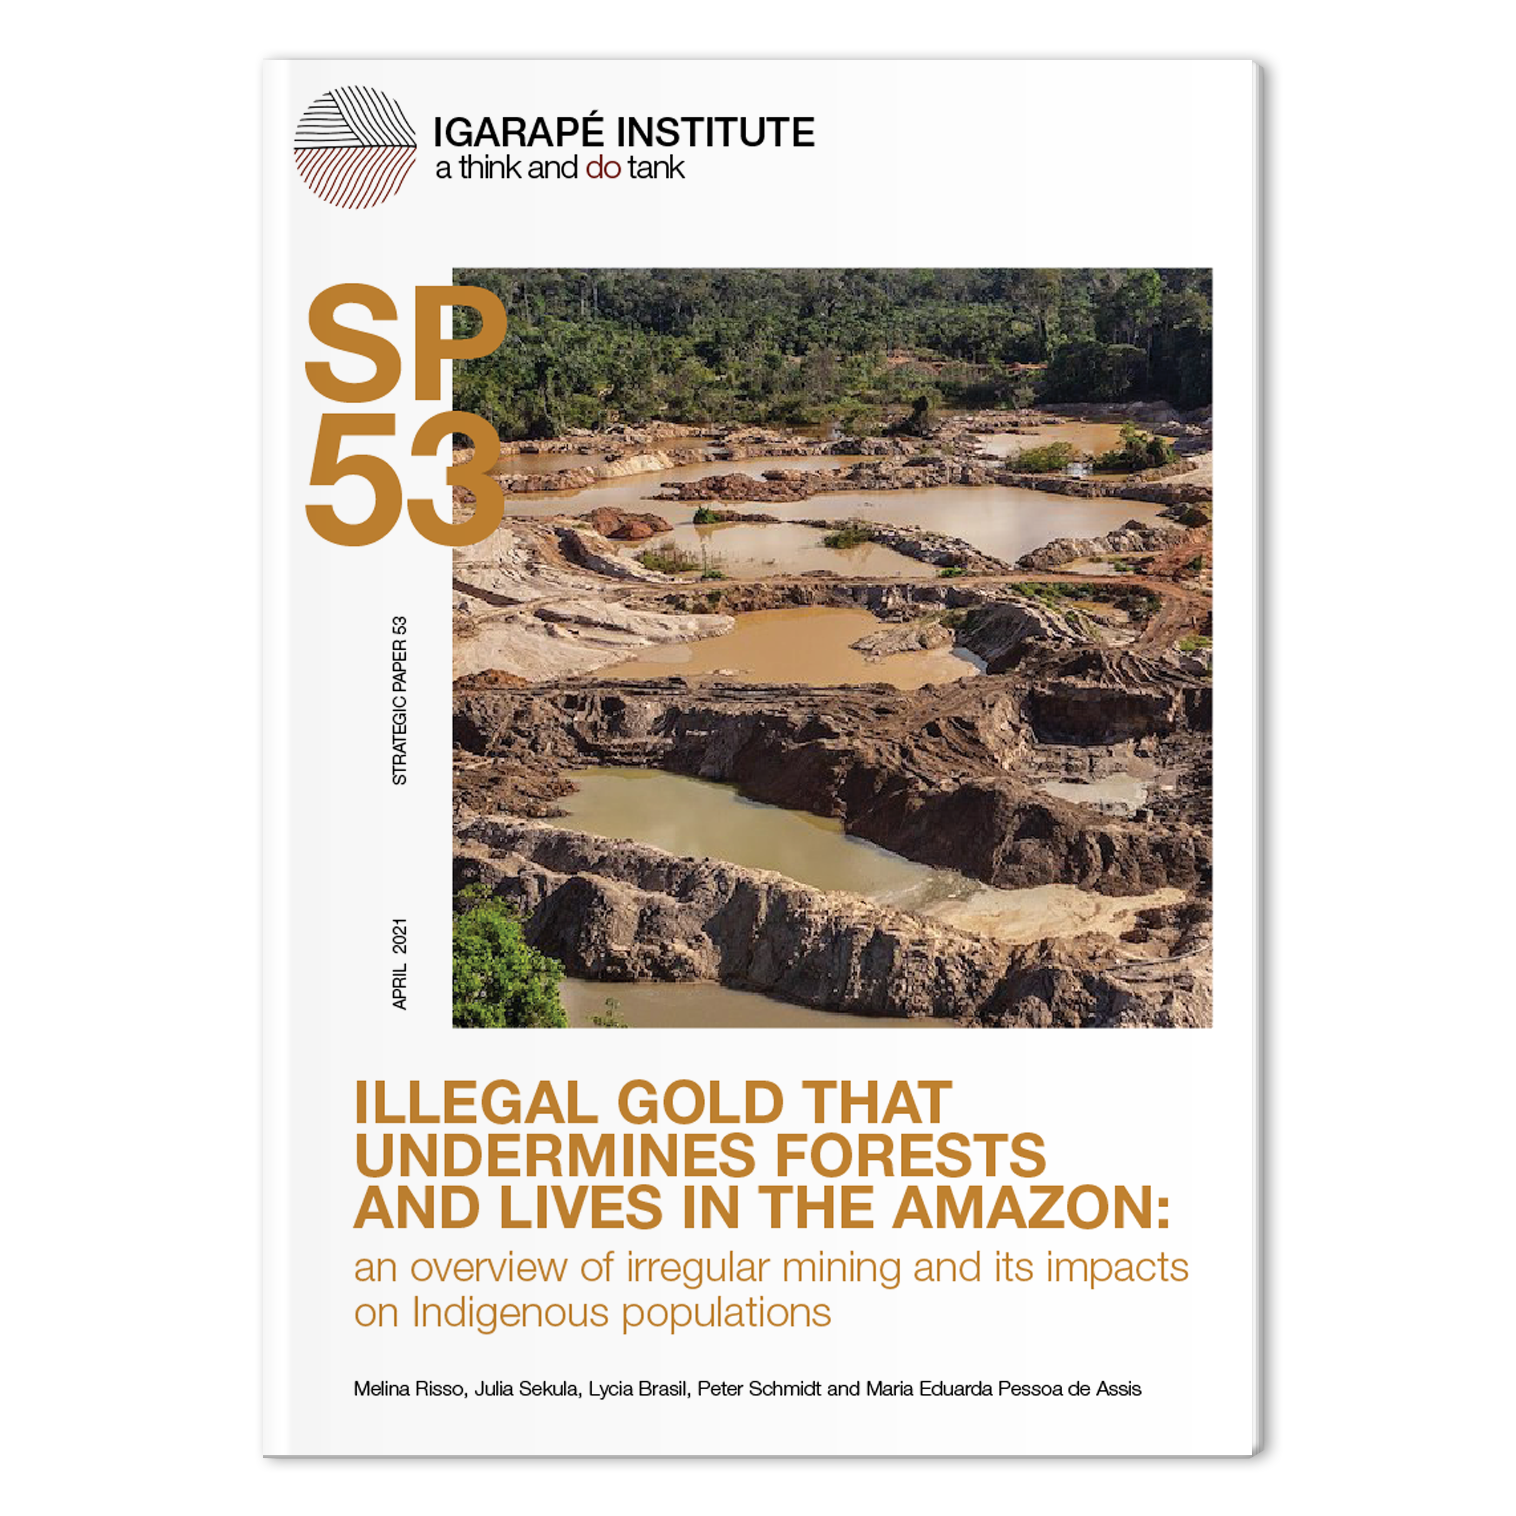 SP53 Illegal gold mining in the Amazon